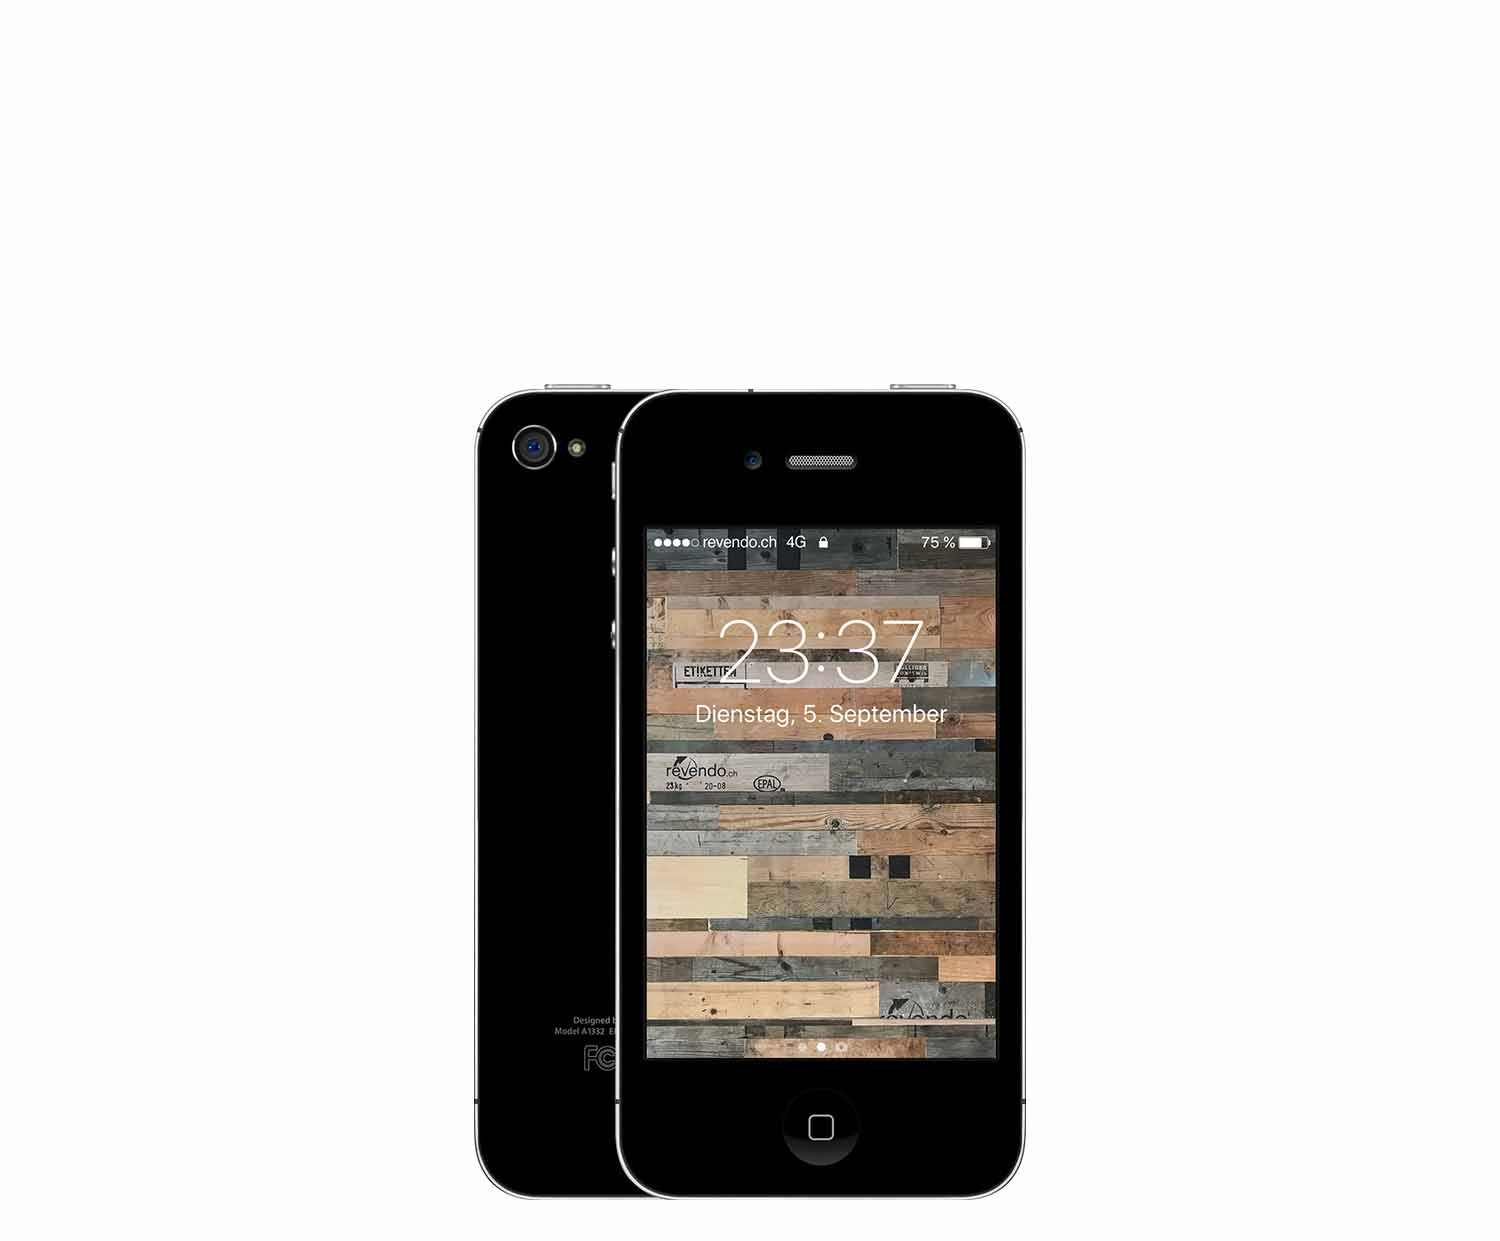 apple iphone 4 32 gb schwarz. Black Bedroom Furniture Sets. Home Design Ideas